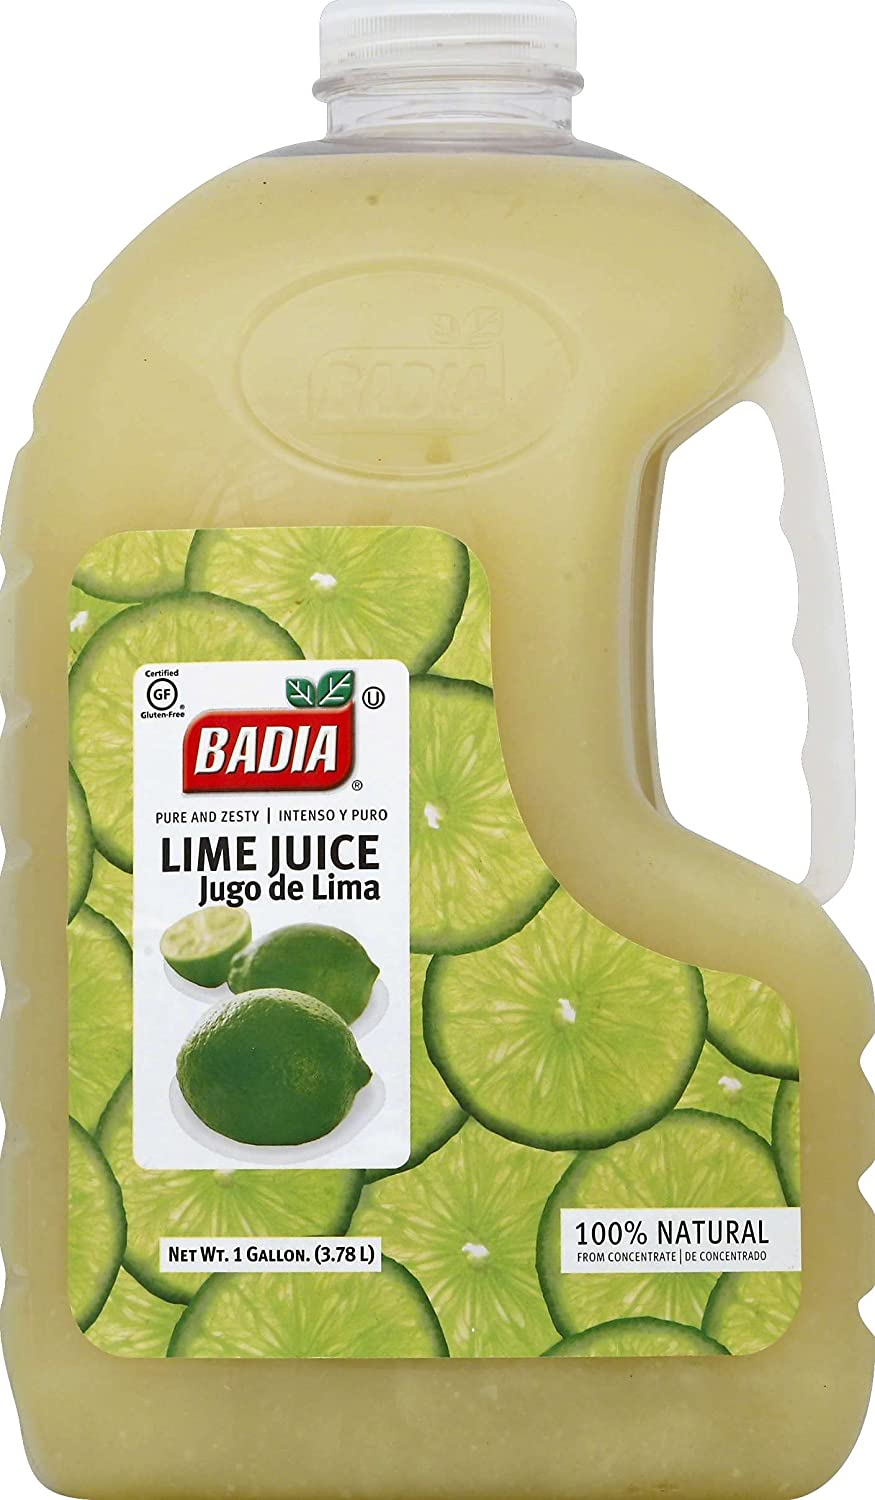 Lime Animer and price Max 64% OFF revision Juice Ready To Drink Made D Natural All Fruit With